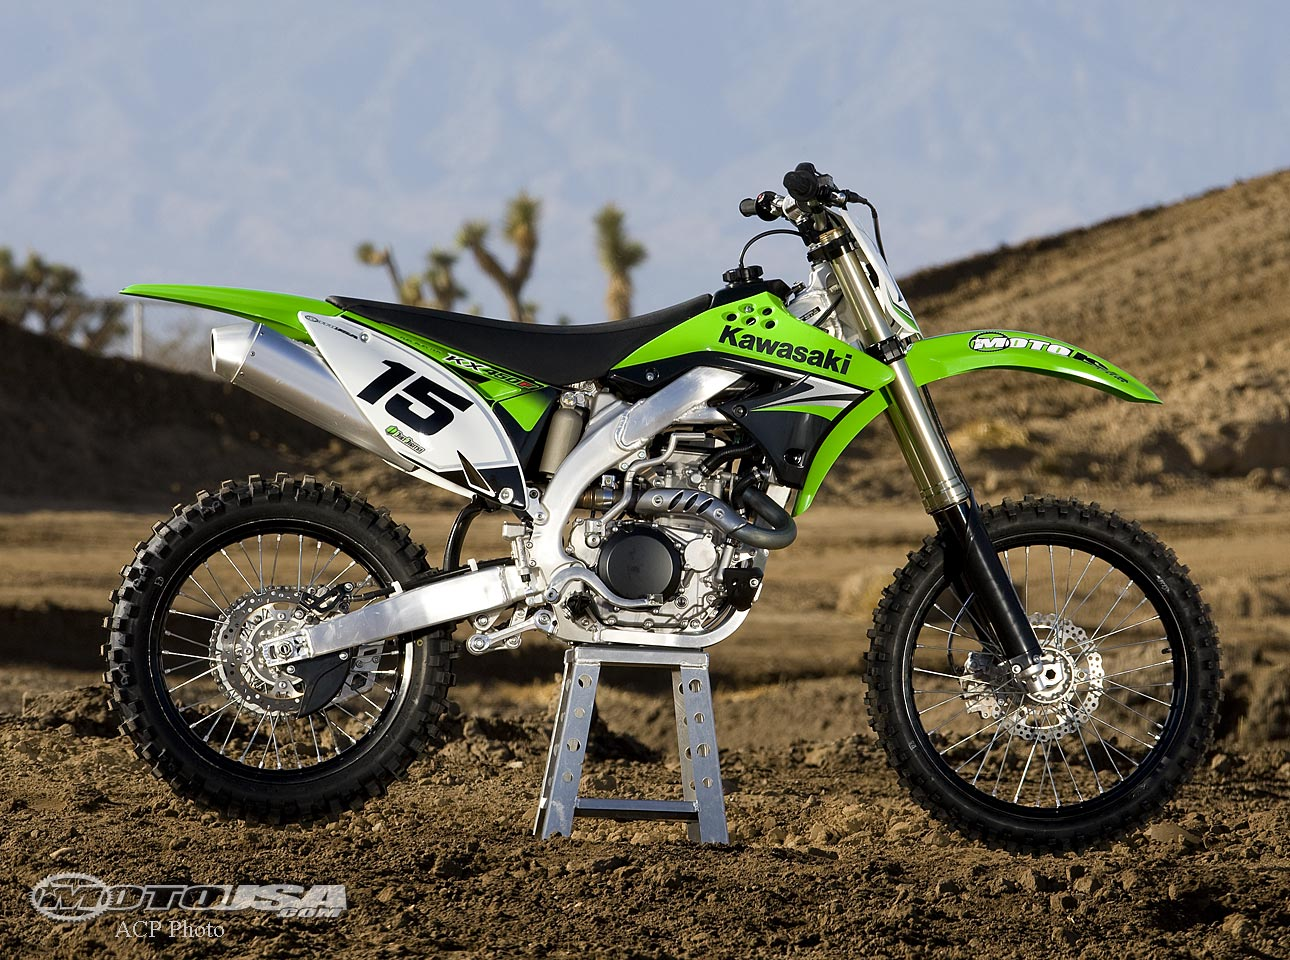 Buddy Adventuriderz Morning Dual Sport Motorcycle Rider Kawasaki KLX 150 Would Have Been Very Suck If This Bike Has A Unusual Engine Specifications